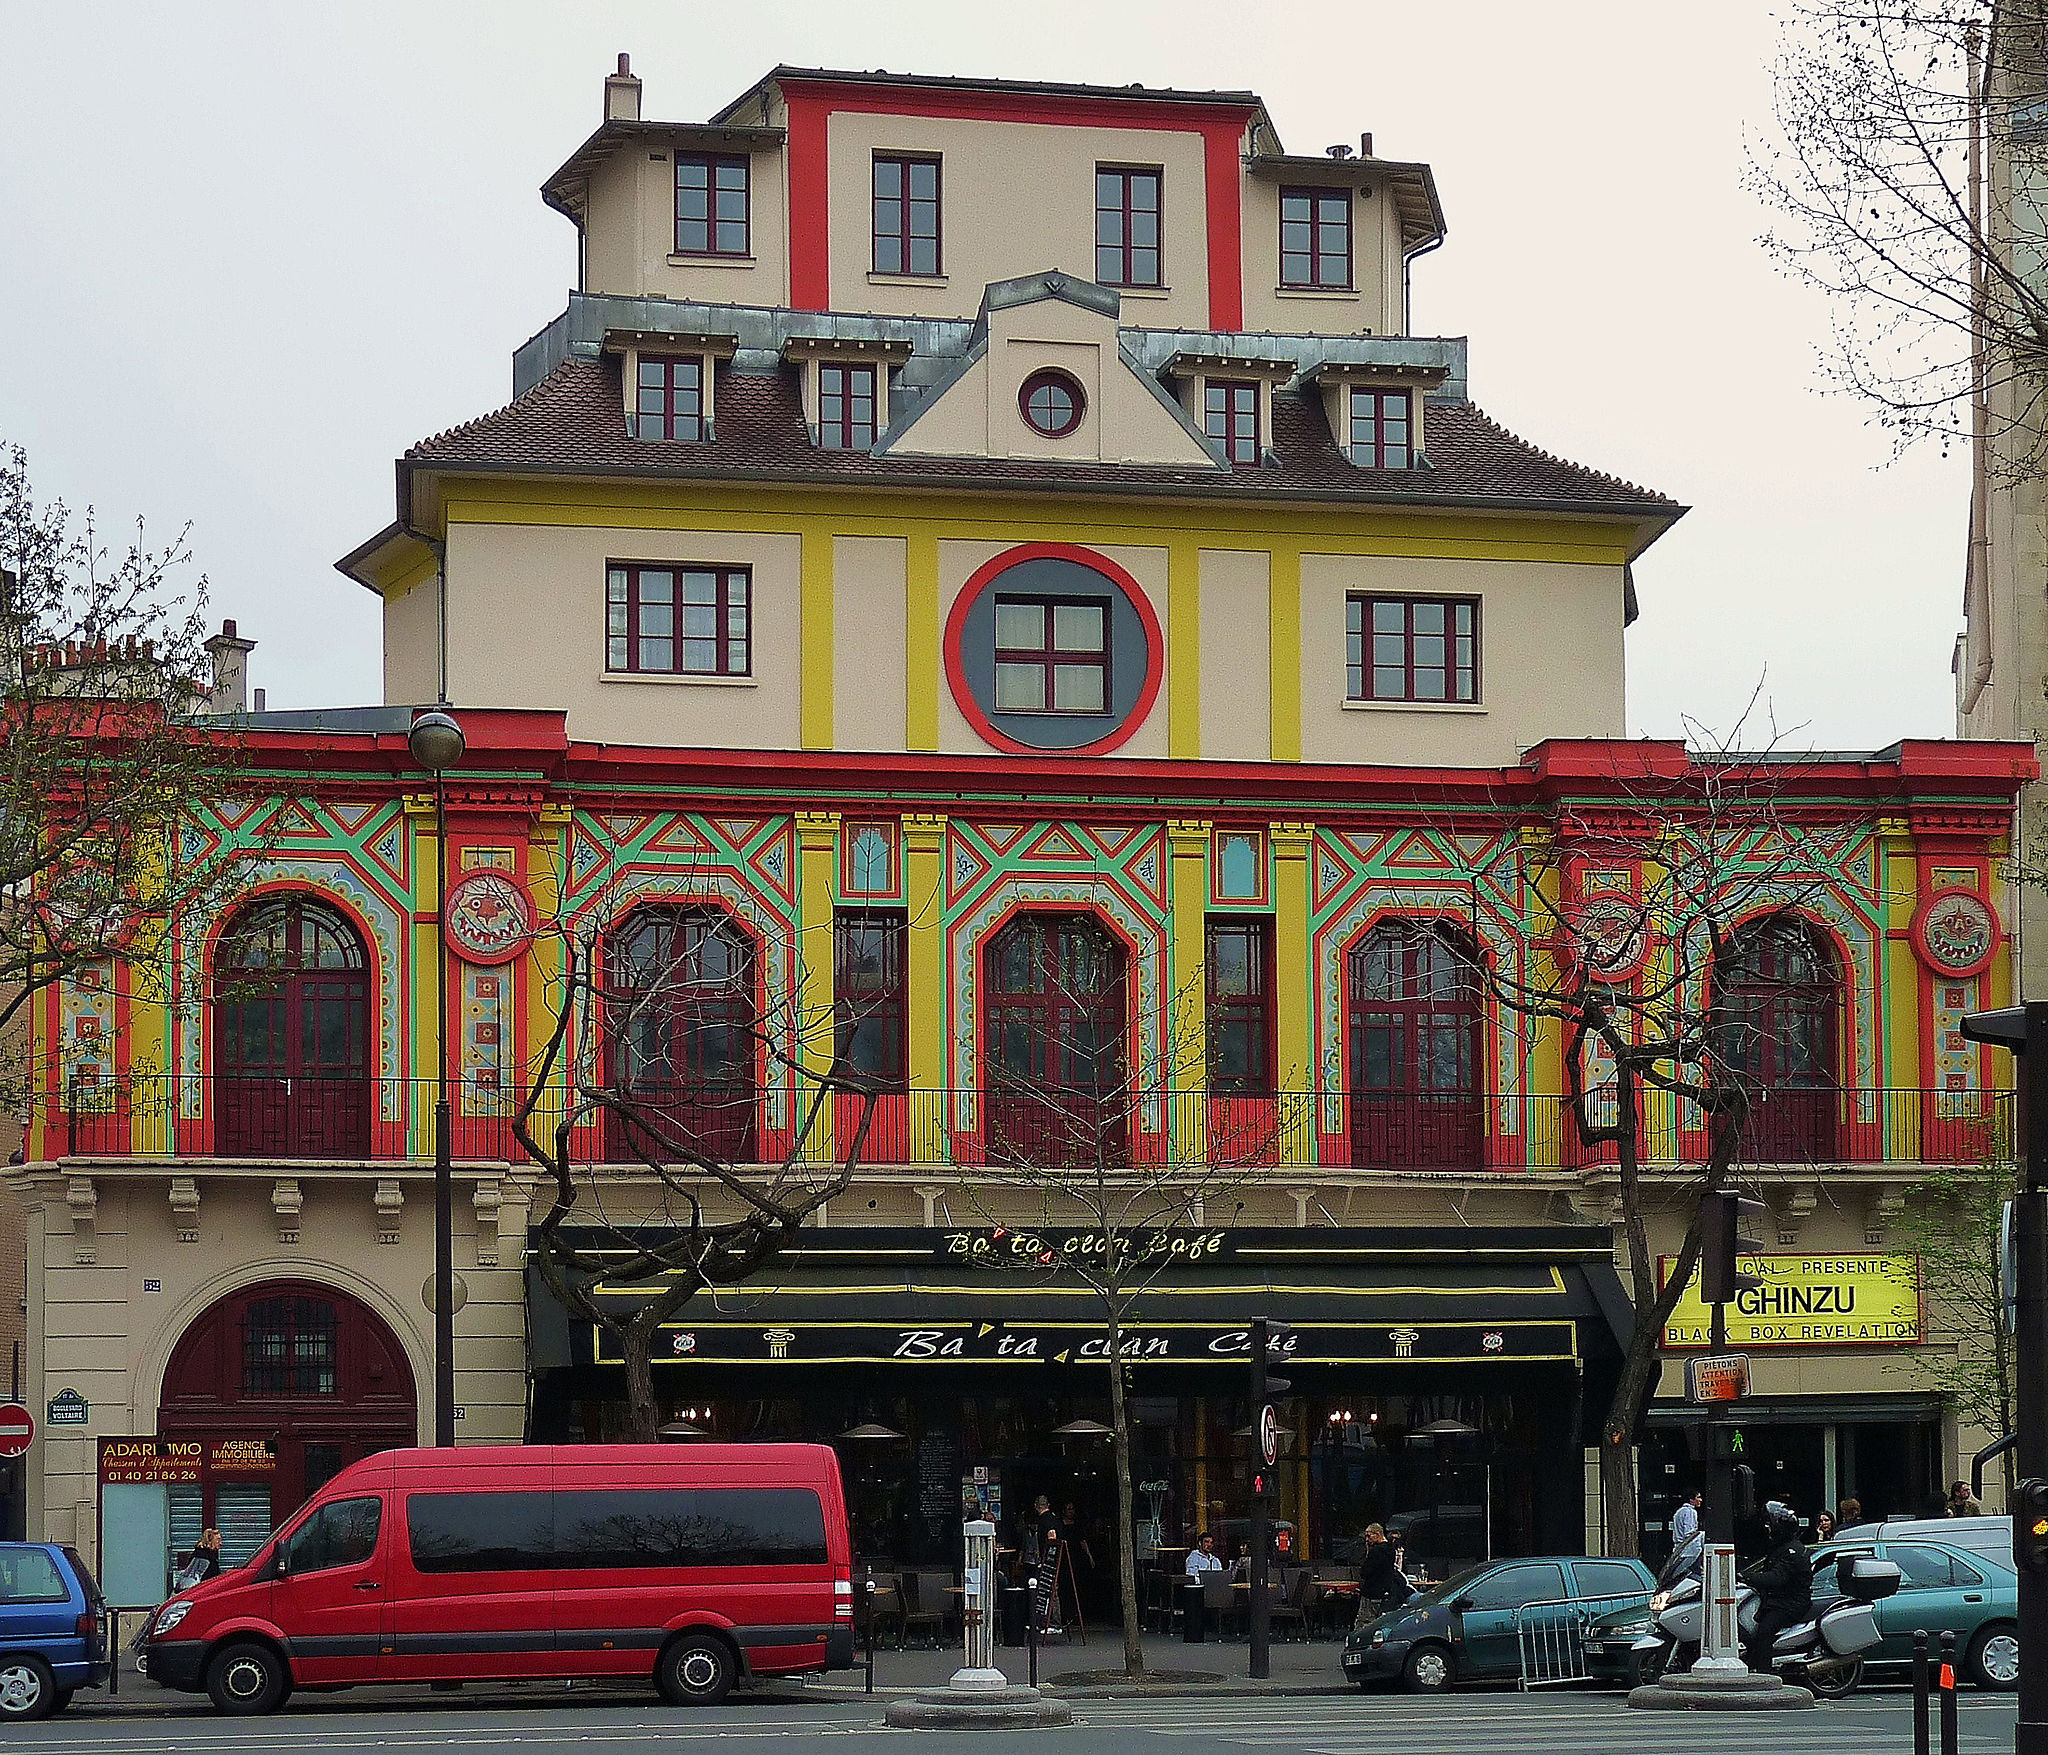 Bataclan_theater,_Paris_3_April_2009